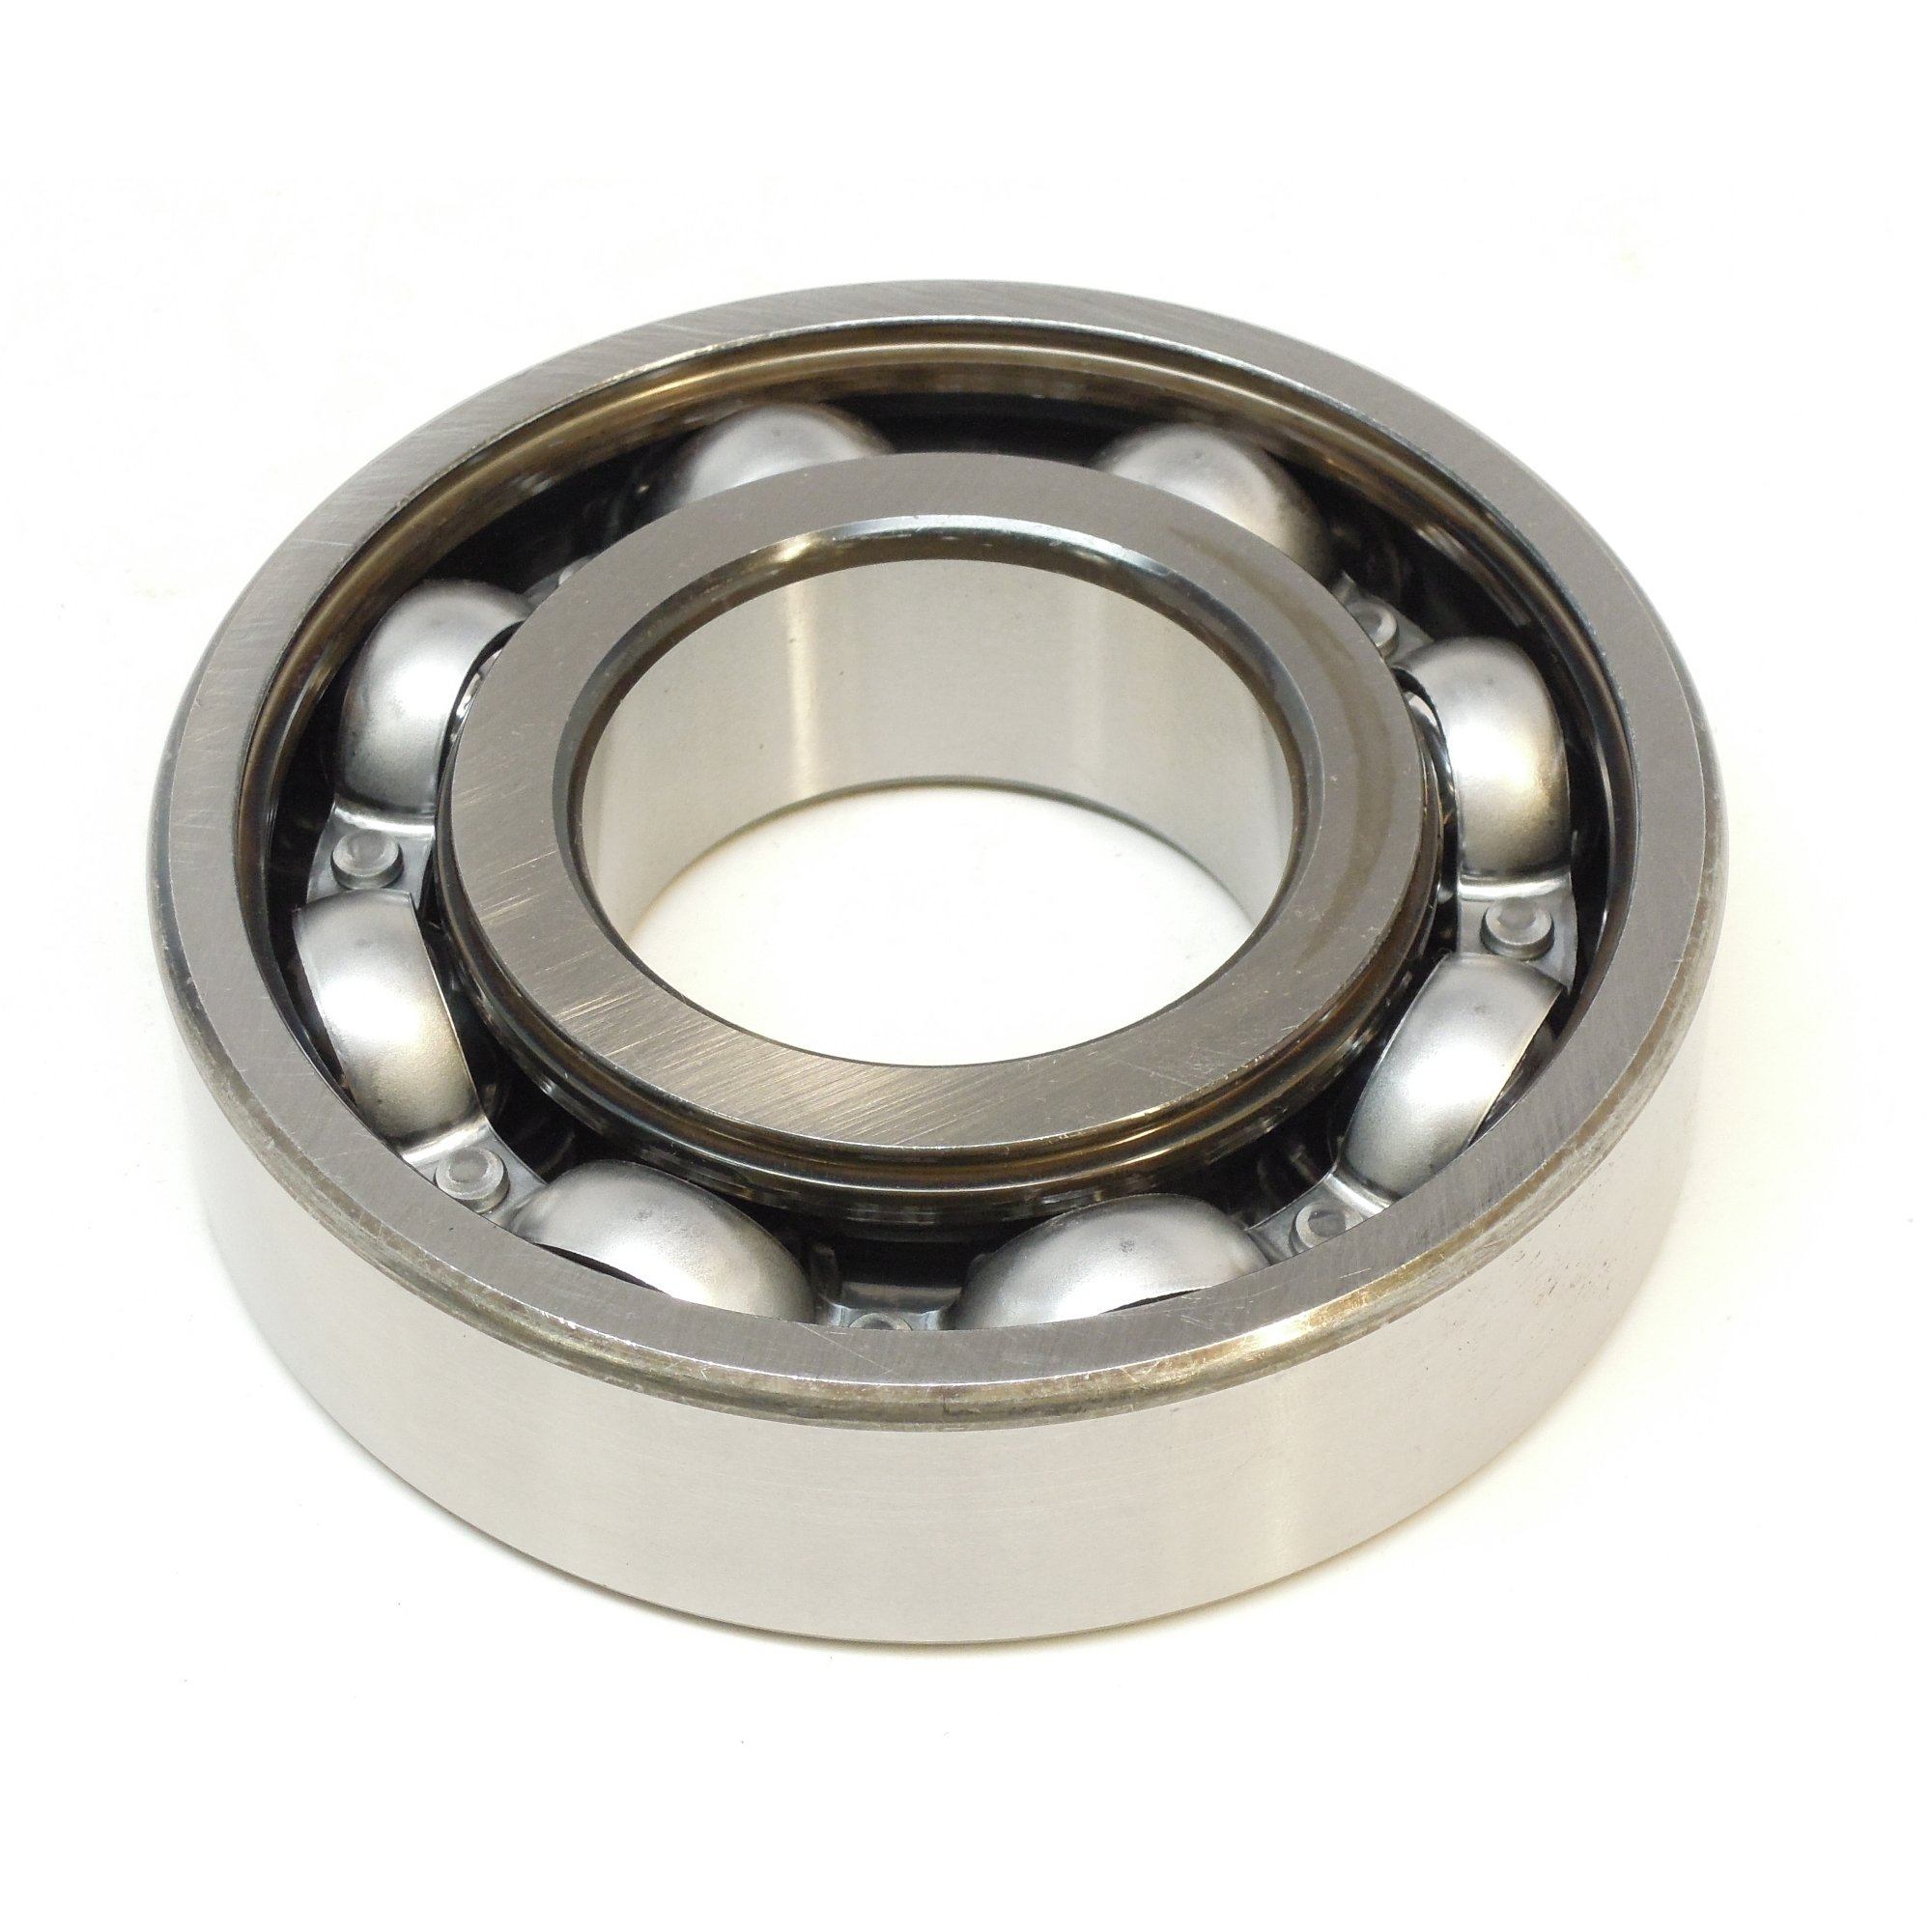 Blackmer 903172 Stainless Steel Ball Bearing for a GX3'' and X3'' Pump